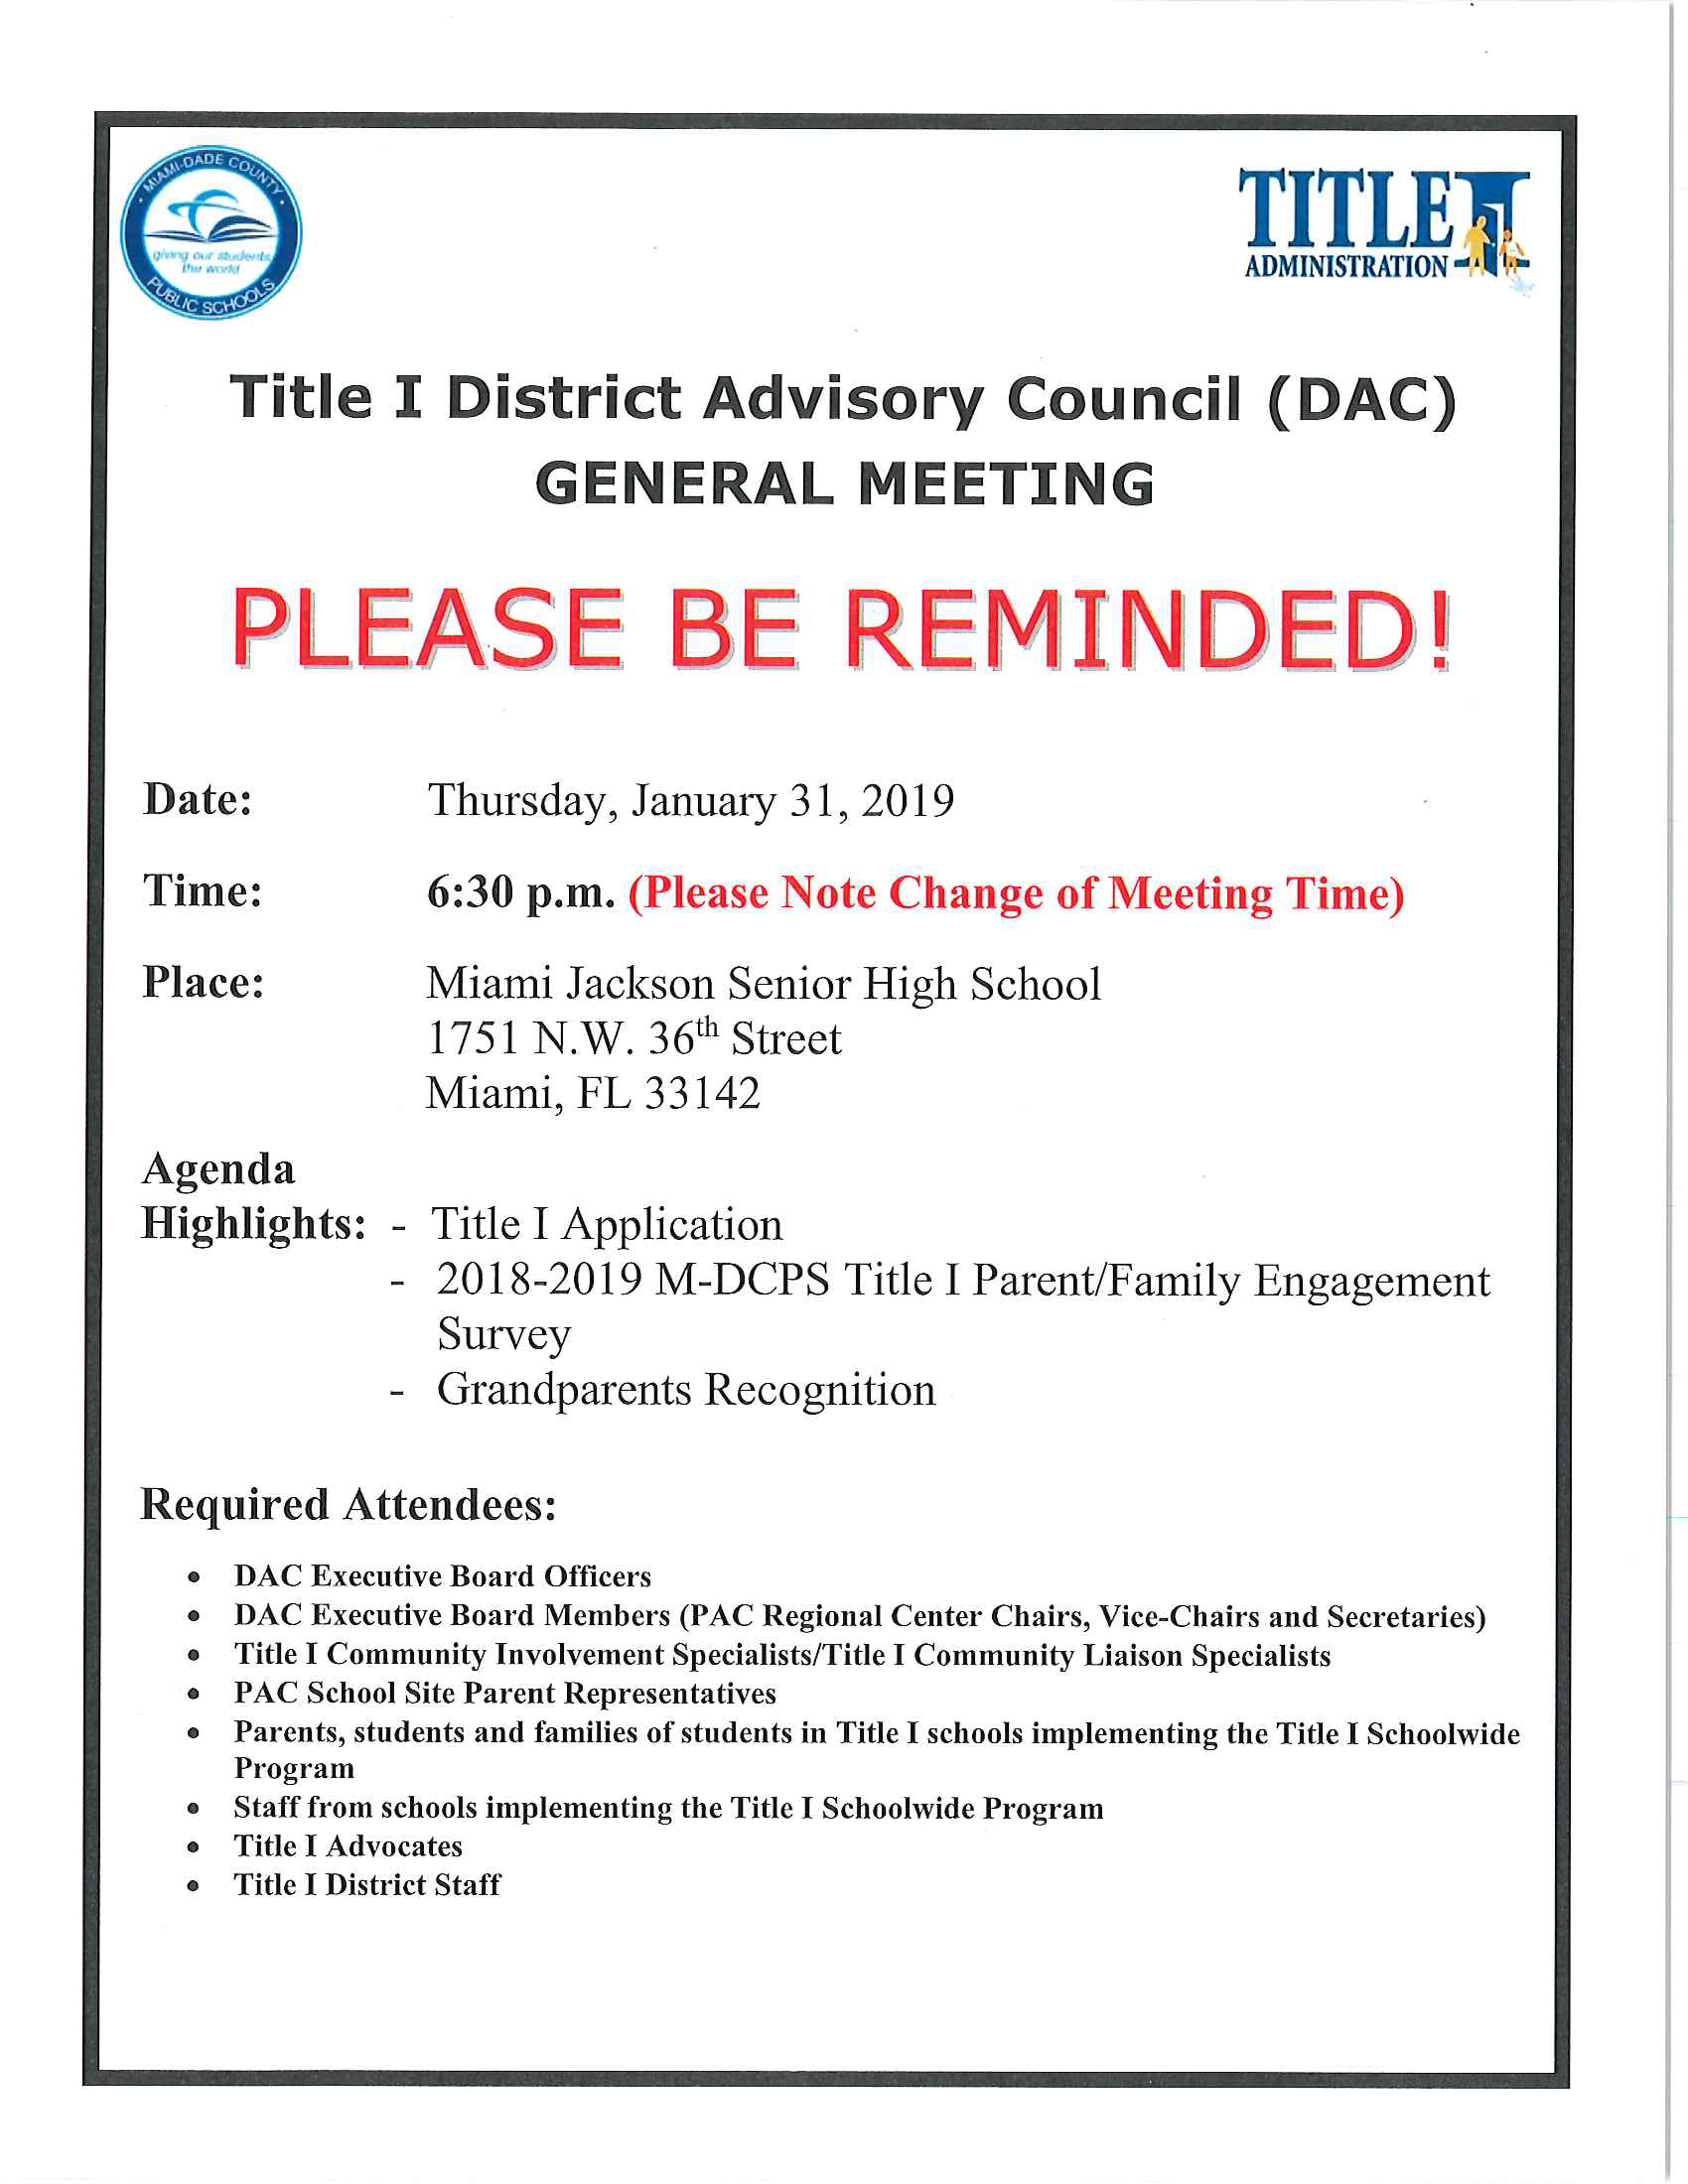 Title 1 District Advisory Council (DAC) General Meeting 1.31.2019_Page_1